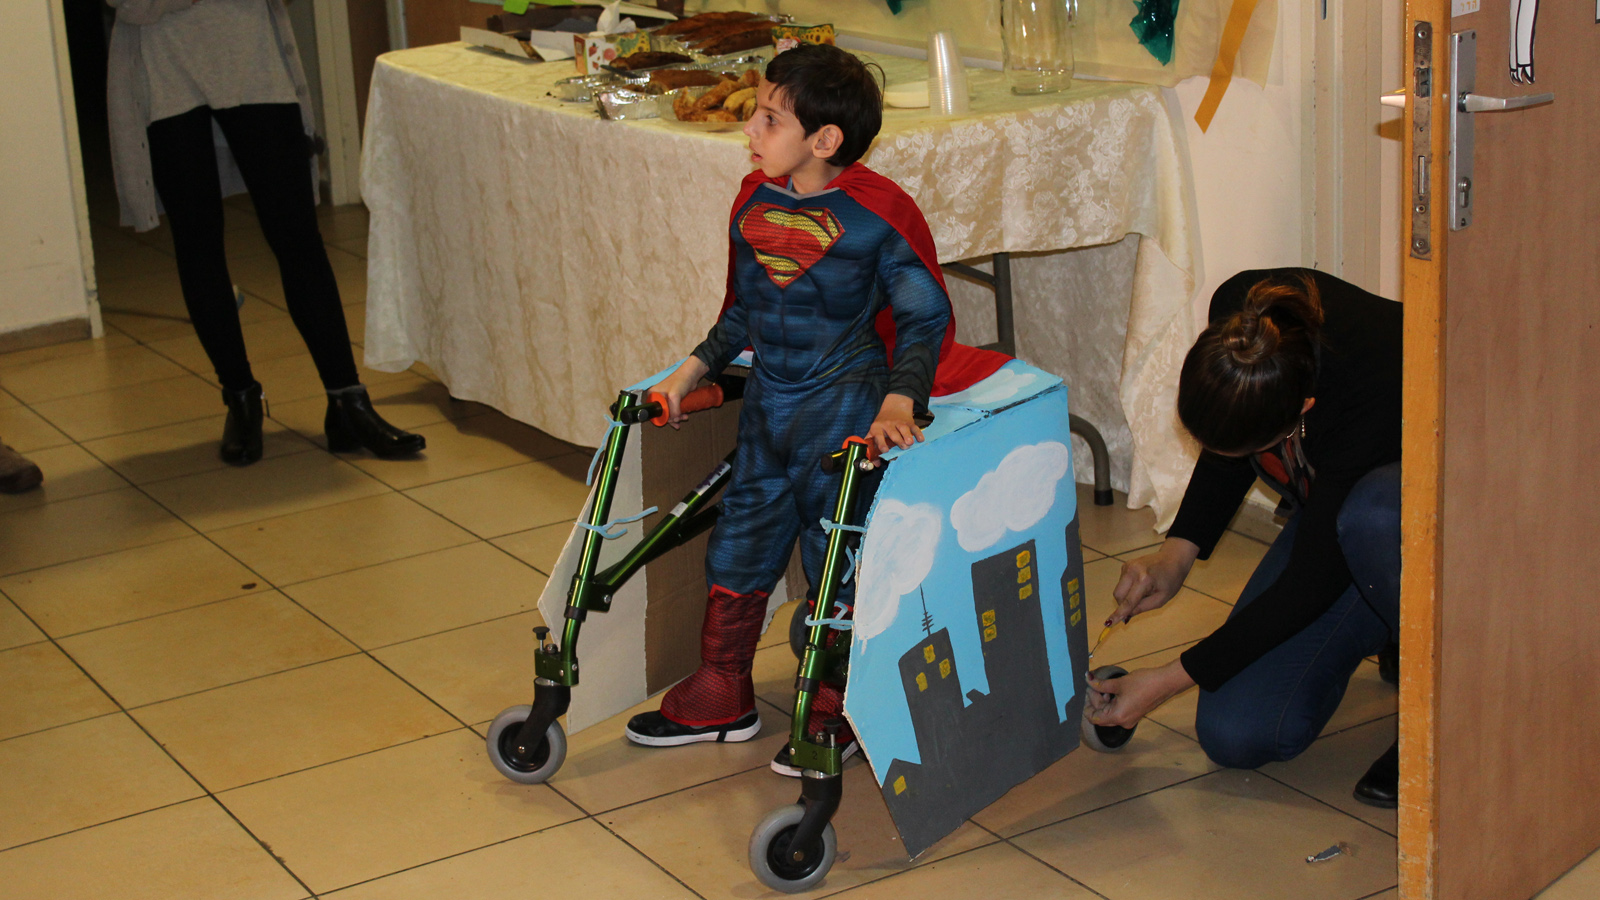 Design students helped six-year-old Brian become Superman for the day. Photo courtesy of Beit Issie Shapiro